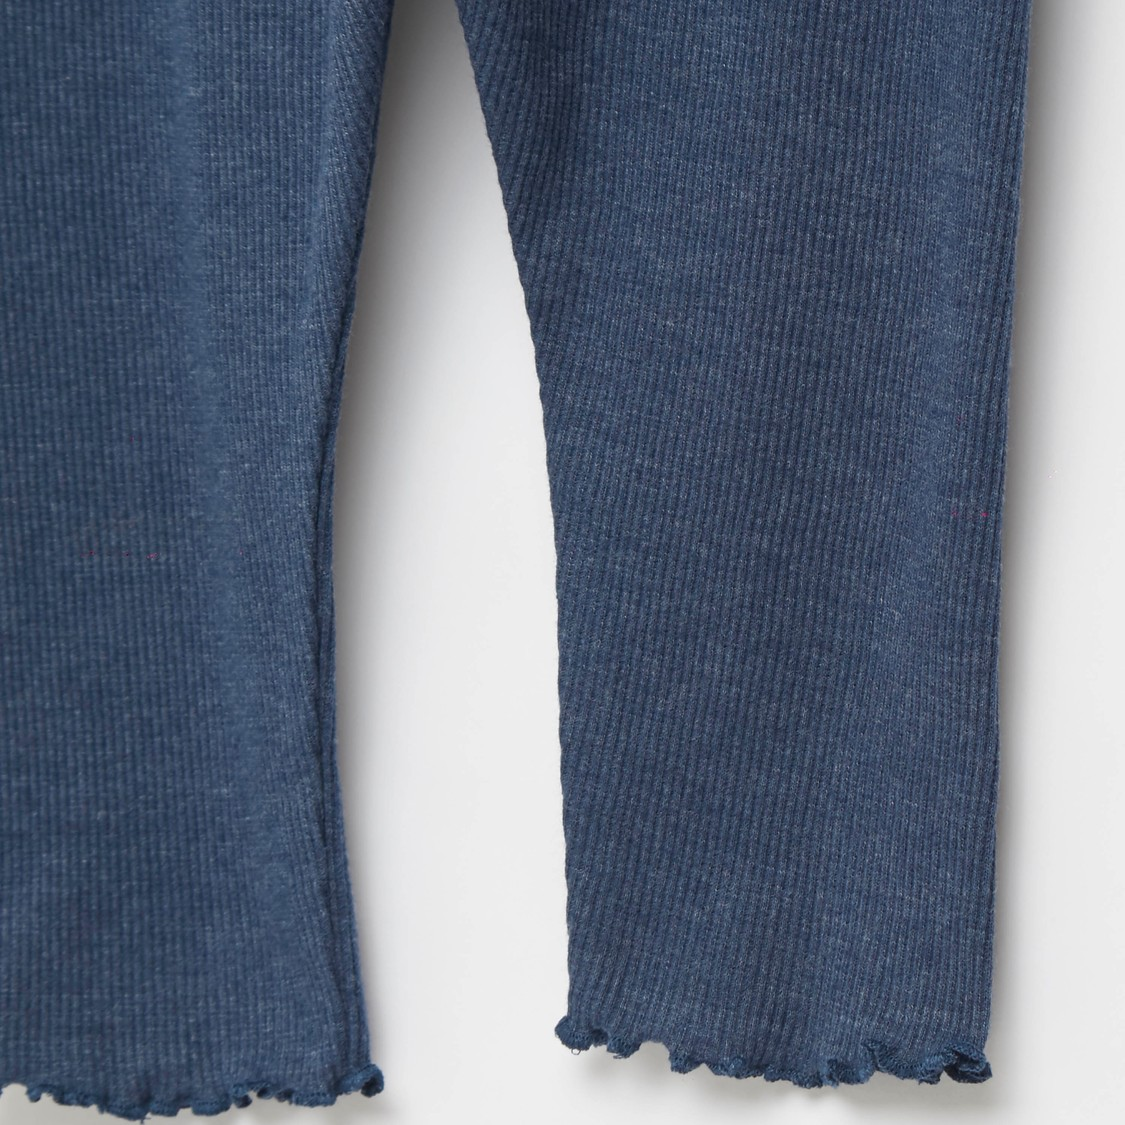 Ribbed Full Length Leggings with Frayed Hems and Elasticated Waistband